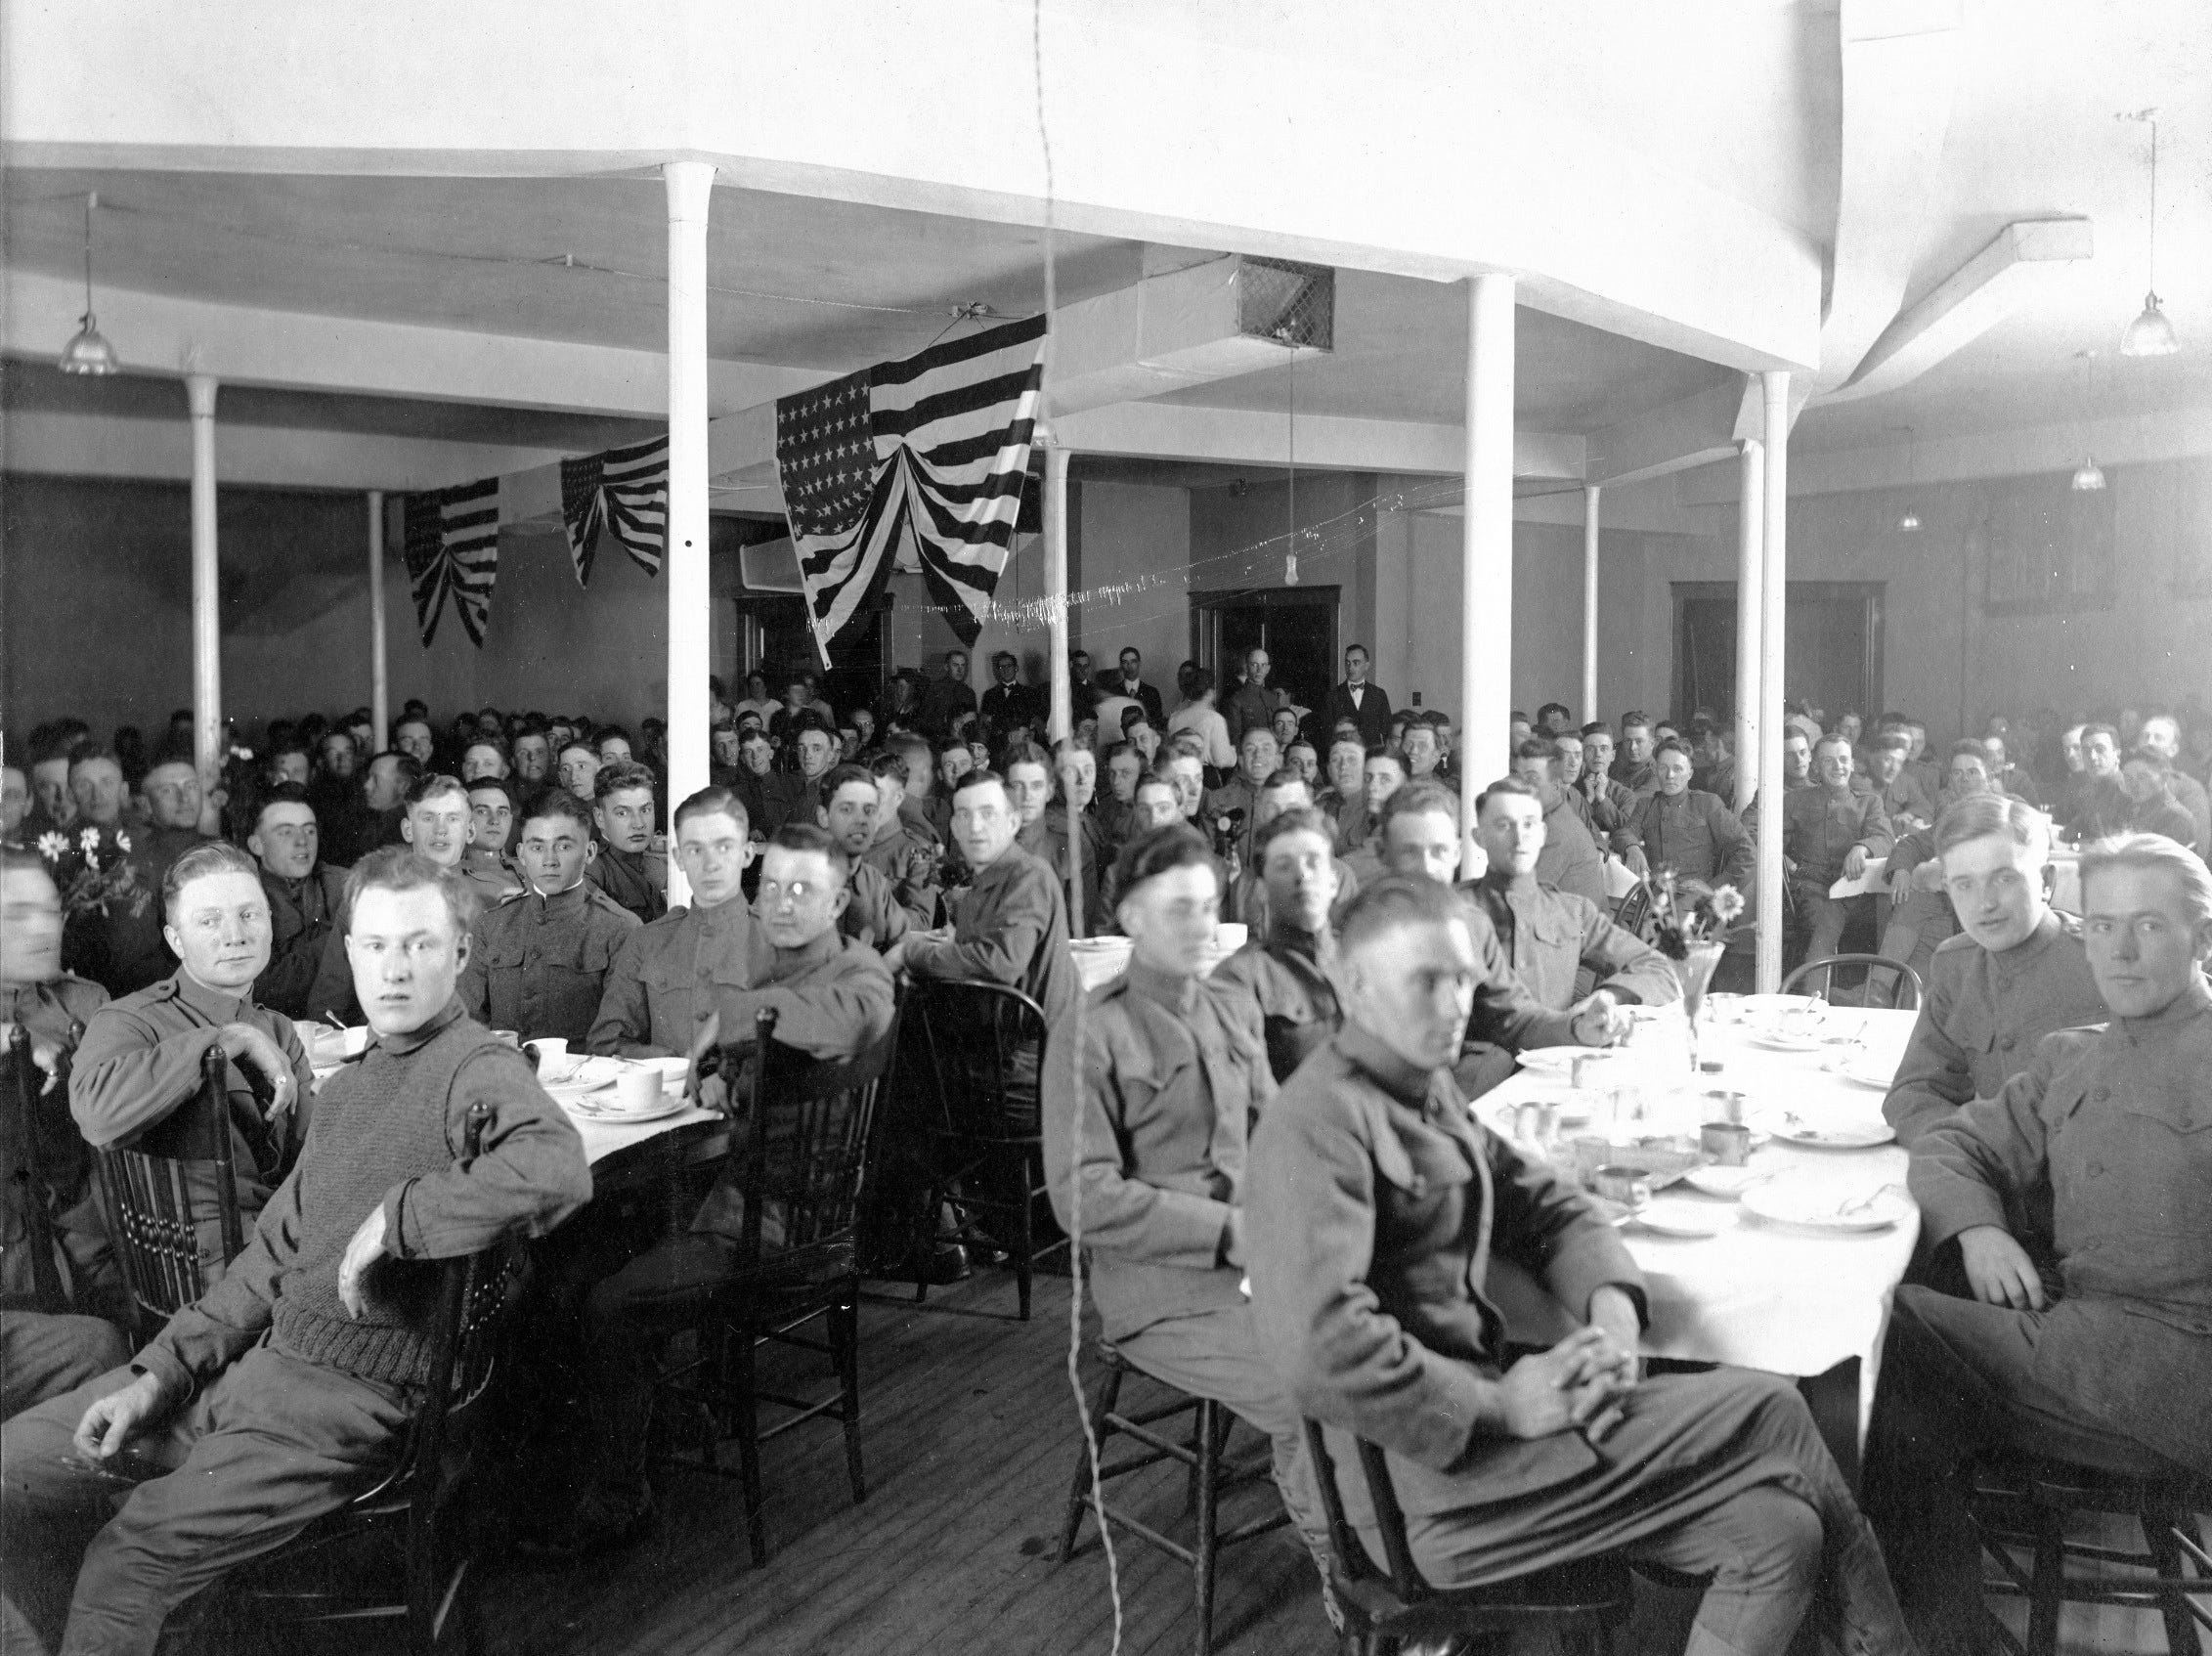 Soldiers having a meal in the First Methodist Church basement dining room during 'The Great War.'